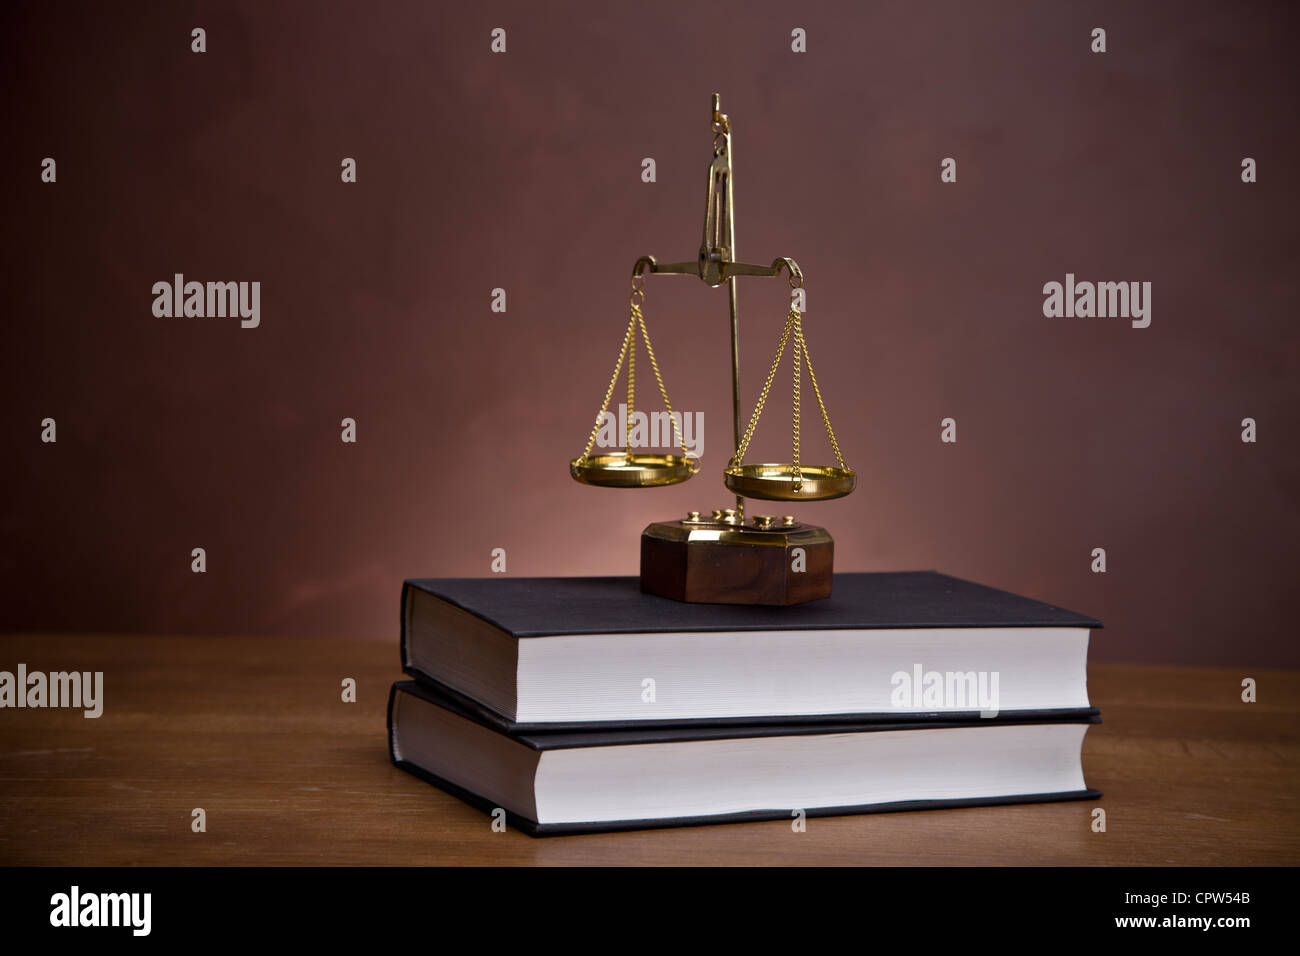 Law concept - Stock Image